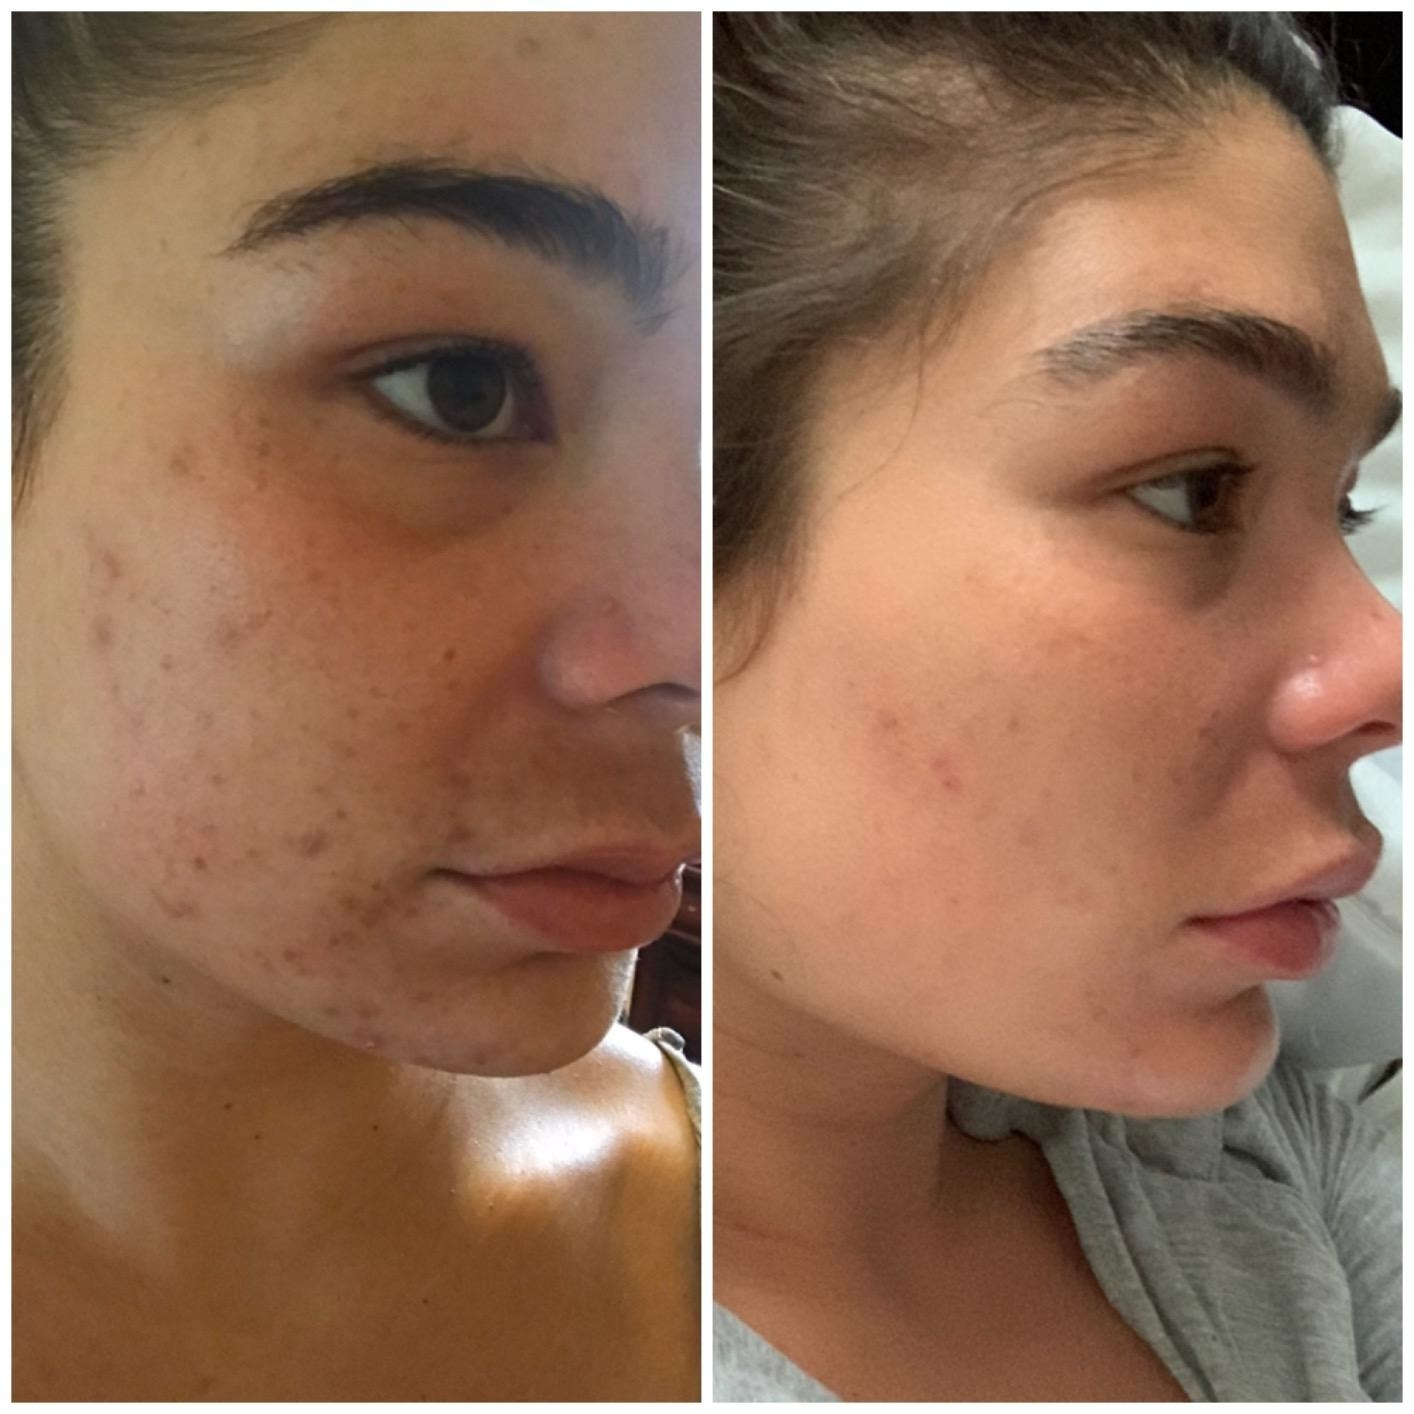 Before and after of a reviewer with patches of dark acne and scars on her cheek showing the mask dramatically reduced hyperpigmentation and helped get rid of breakouts